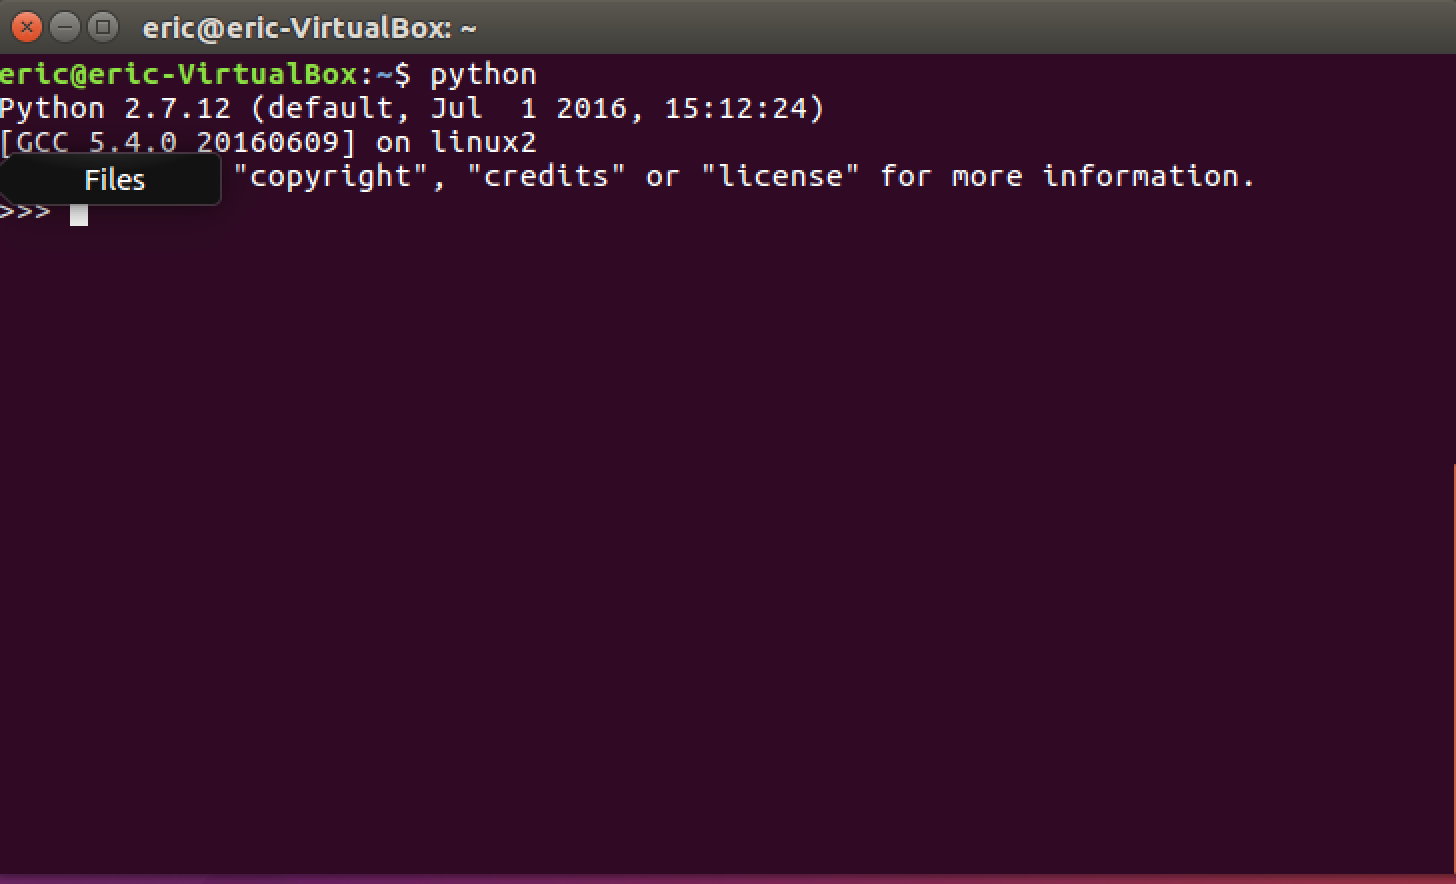 Installing Python on Linux (and the necessary modules)